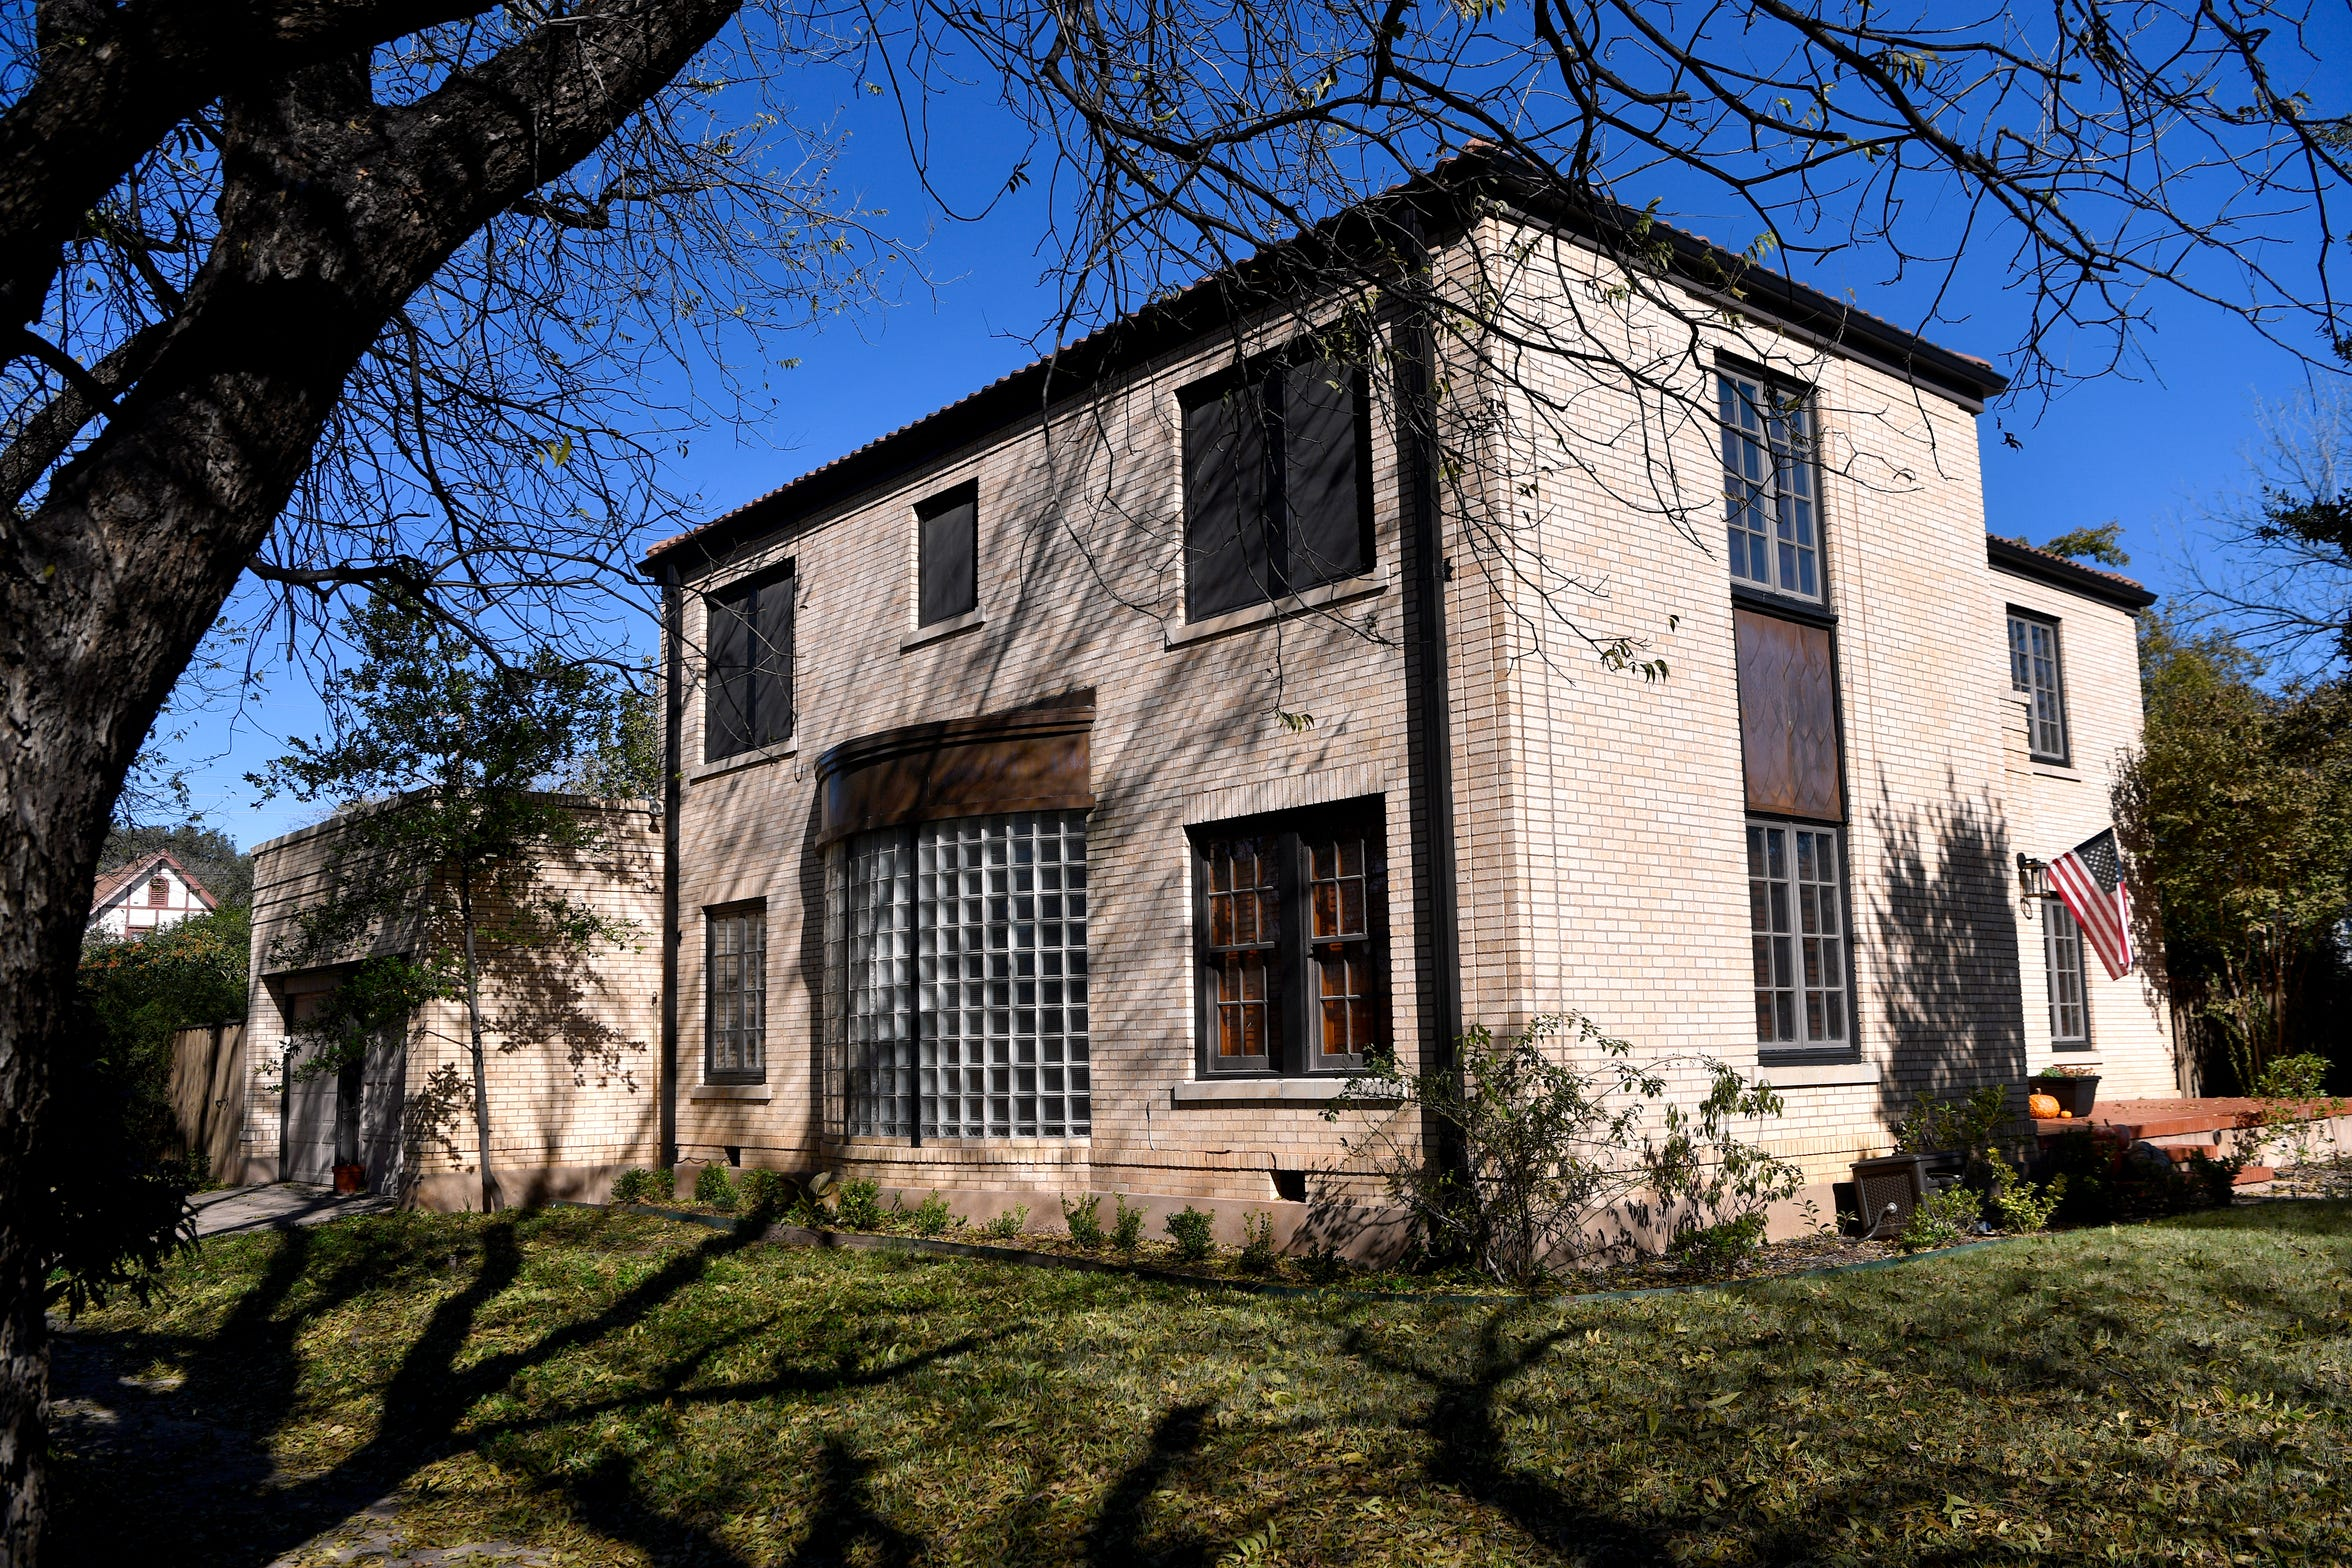 The home at 2142 Idlewild Street, designed by Abilene architect David Castle.